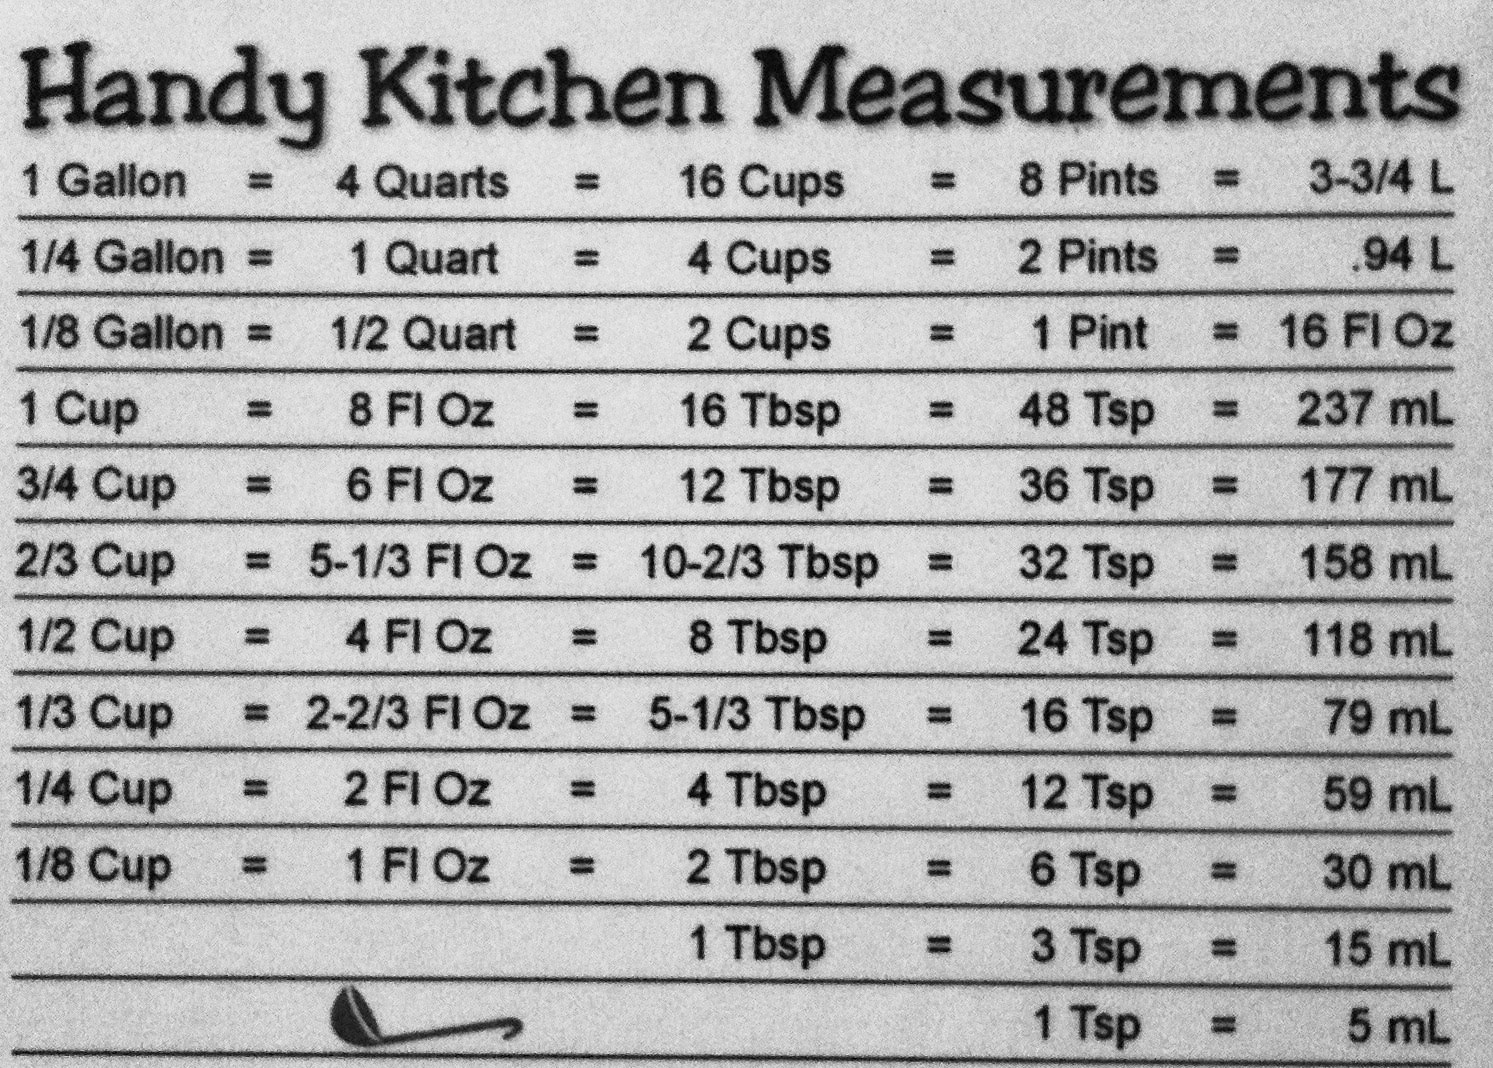 Liquid measurement conversion chart math pinterest measurement liquid measurement conversion chart math pinterest measurement conversion measurement conversion chart and kitchen measurements nvjuhfo Image collections